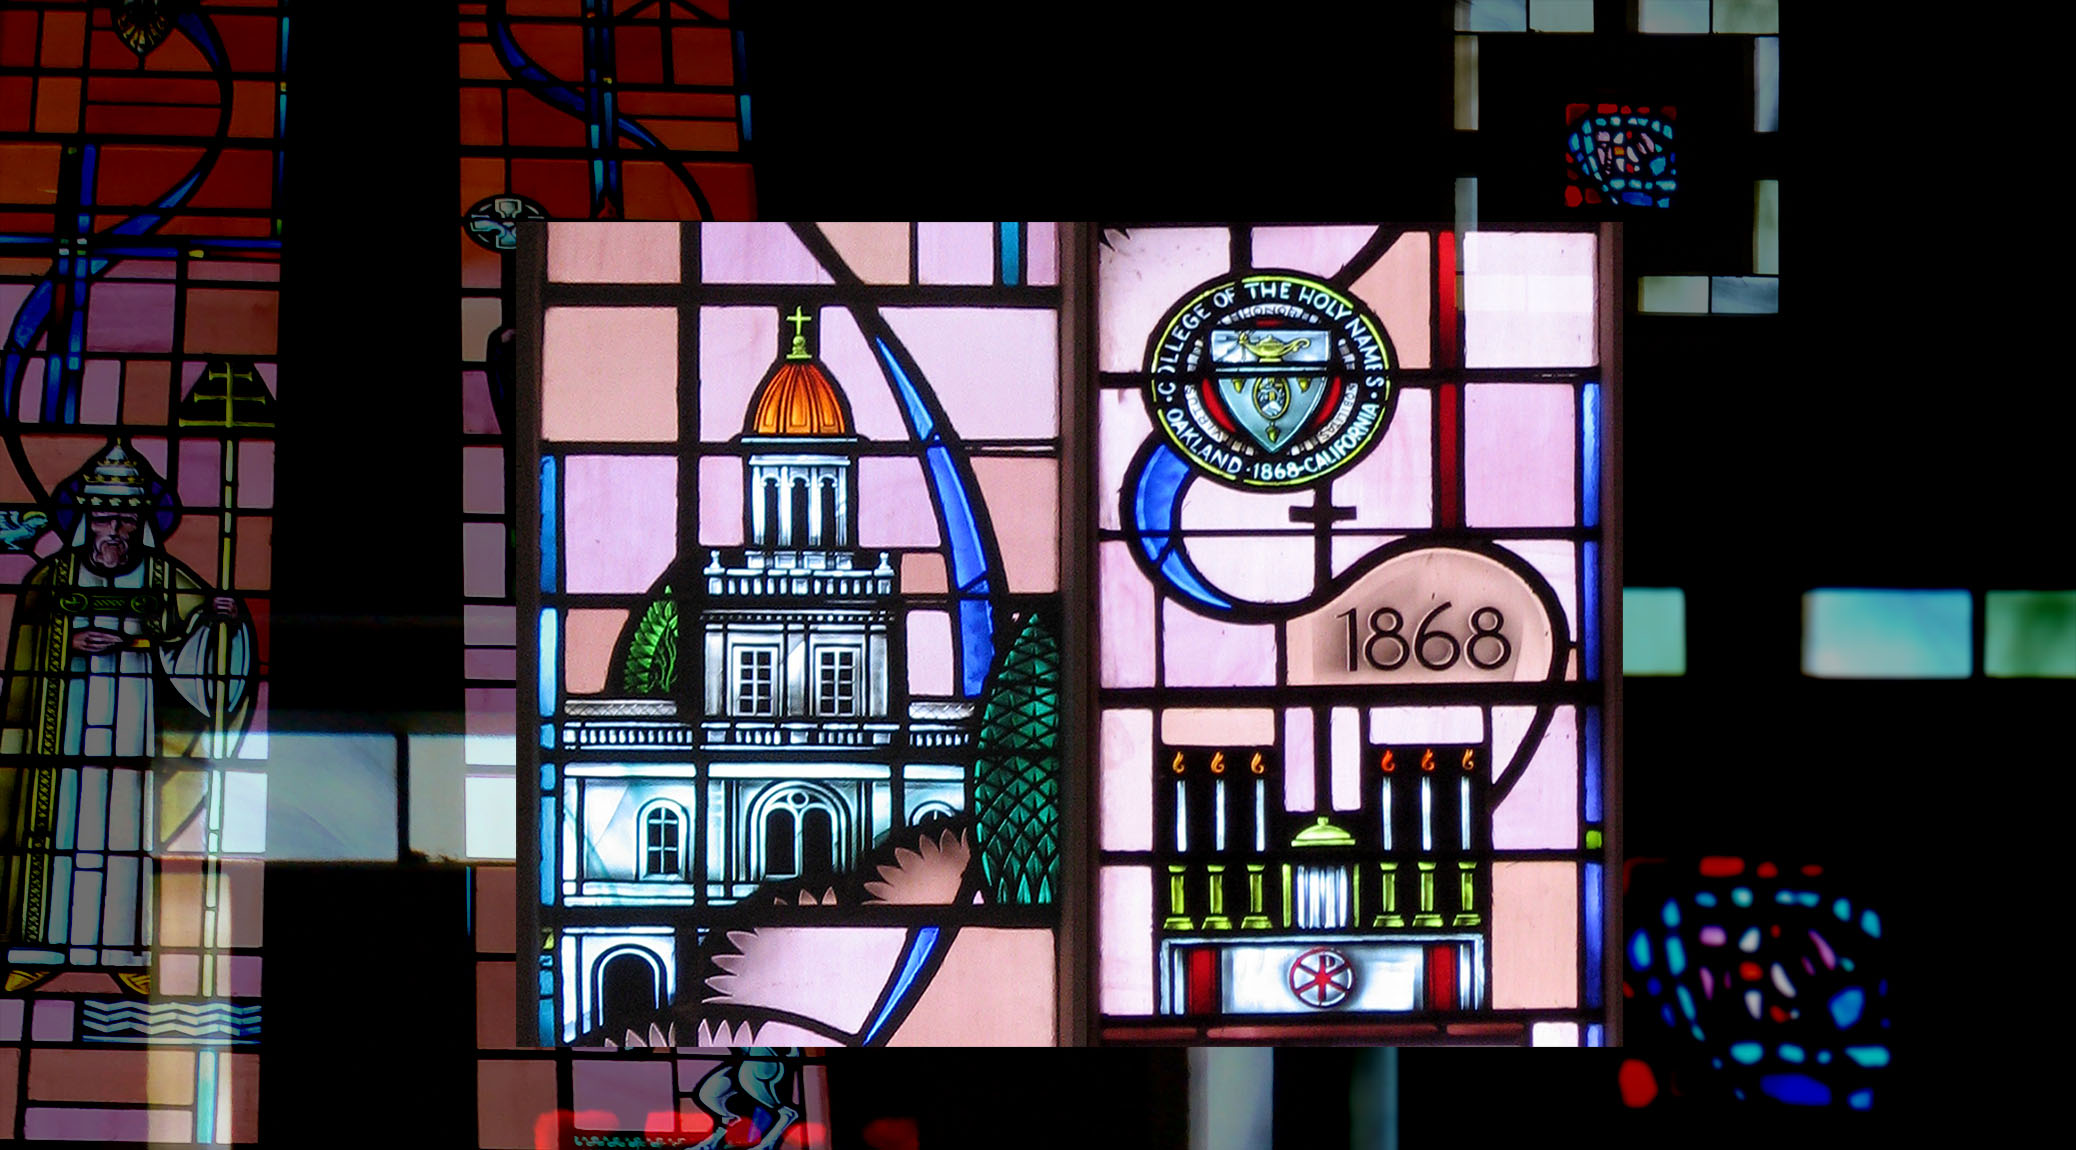 Stained glass representation of Campus Ministry at Holy Names University